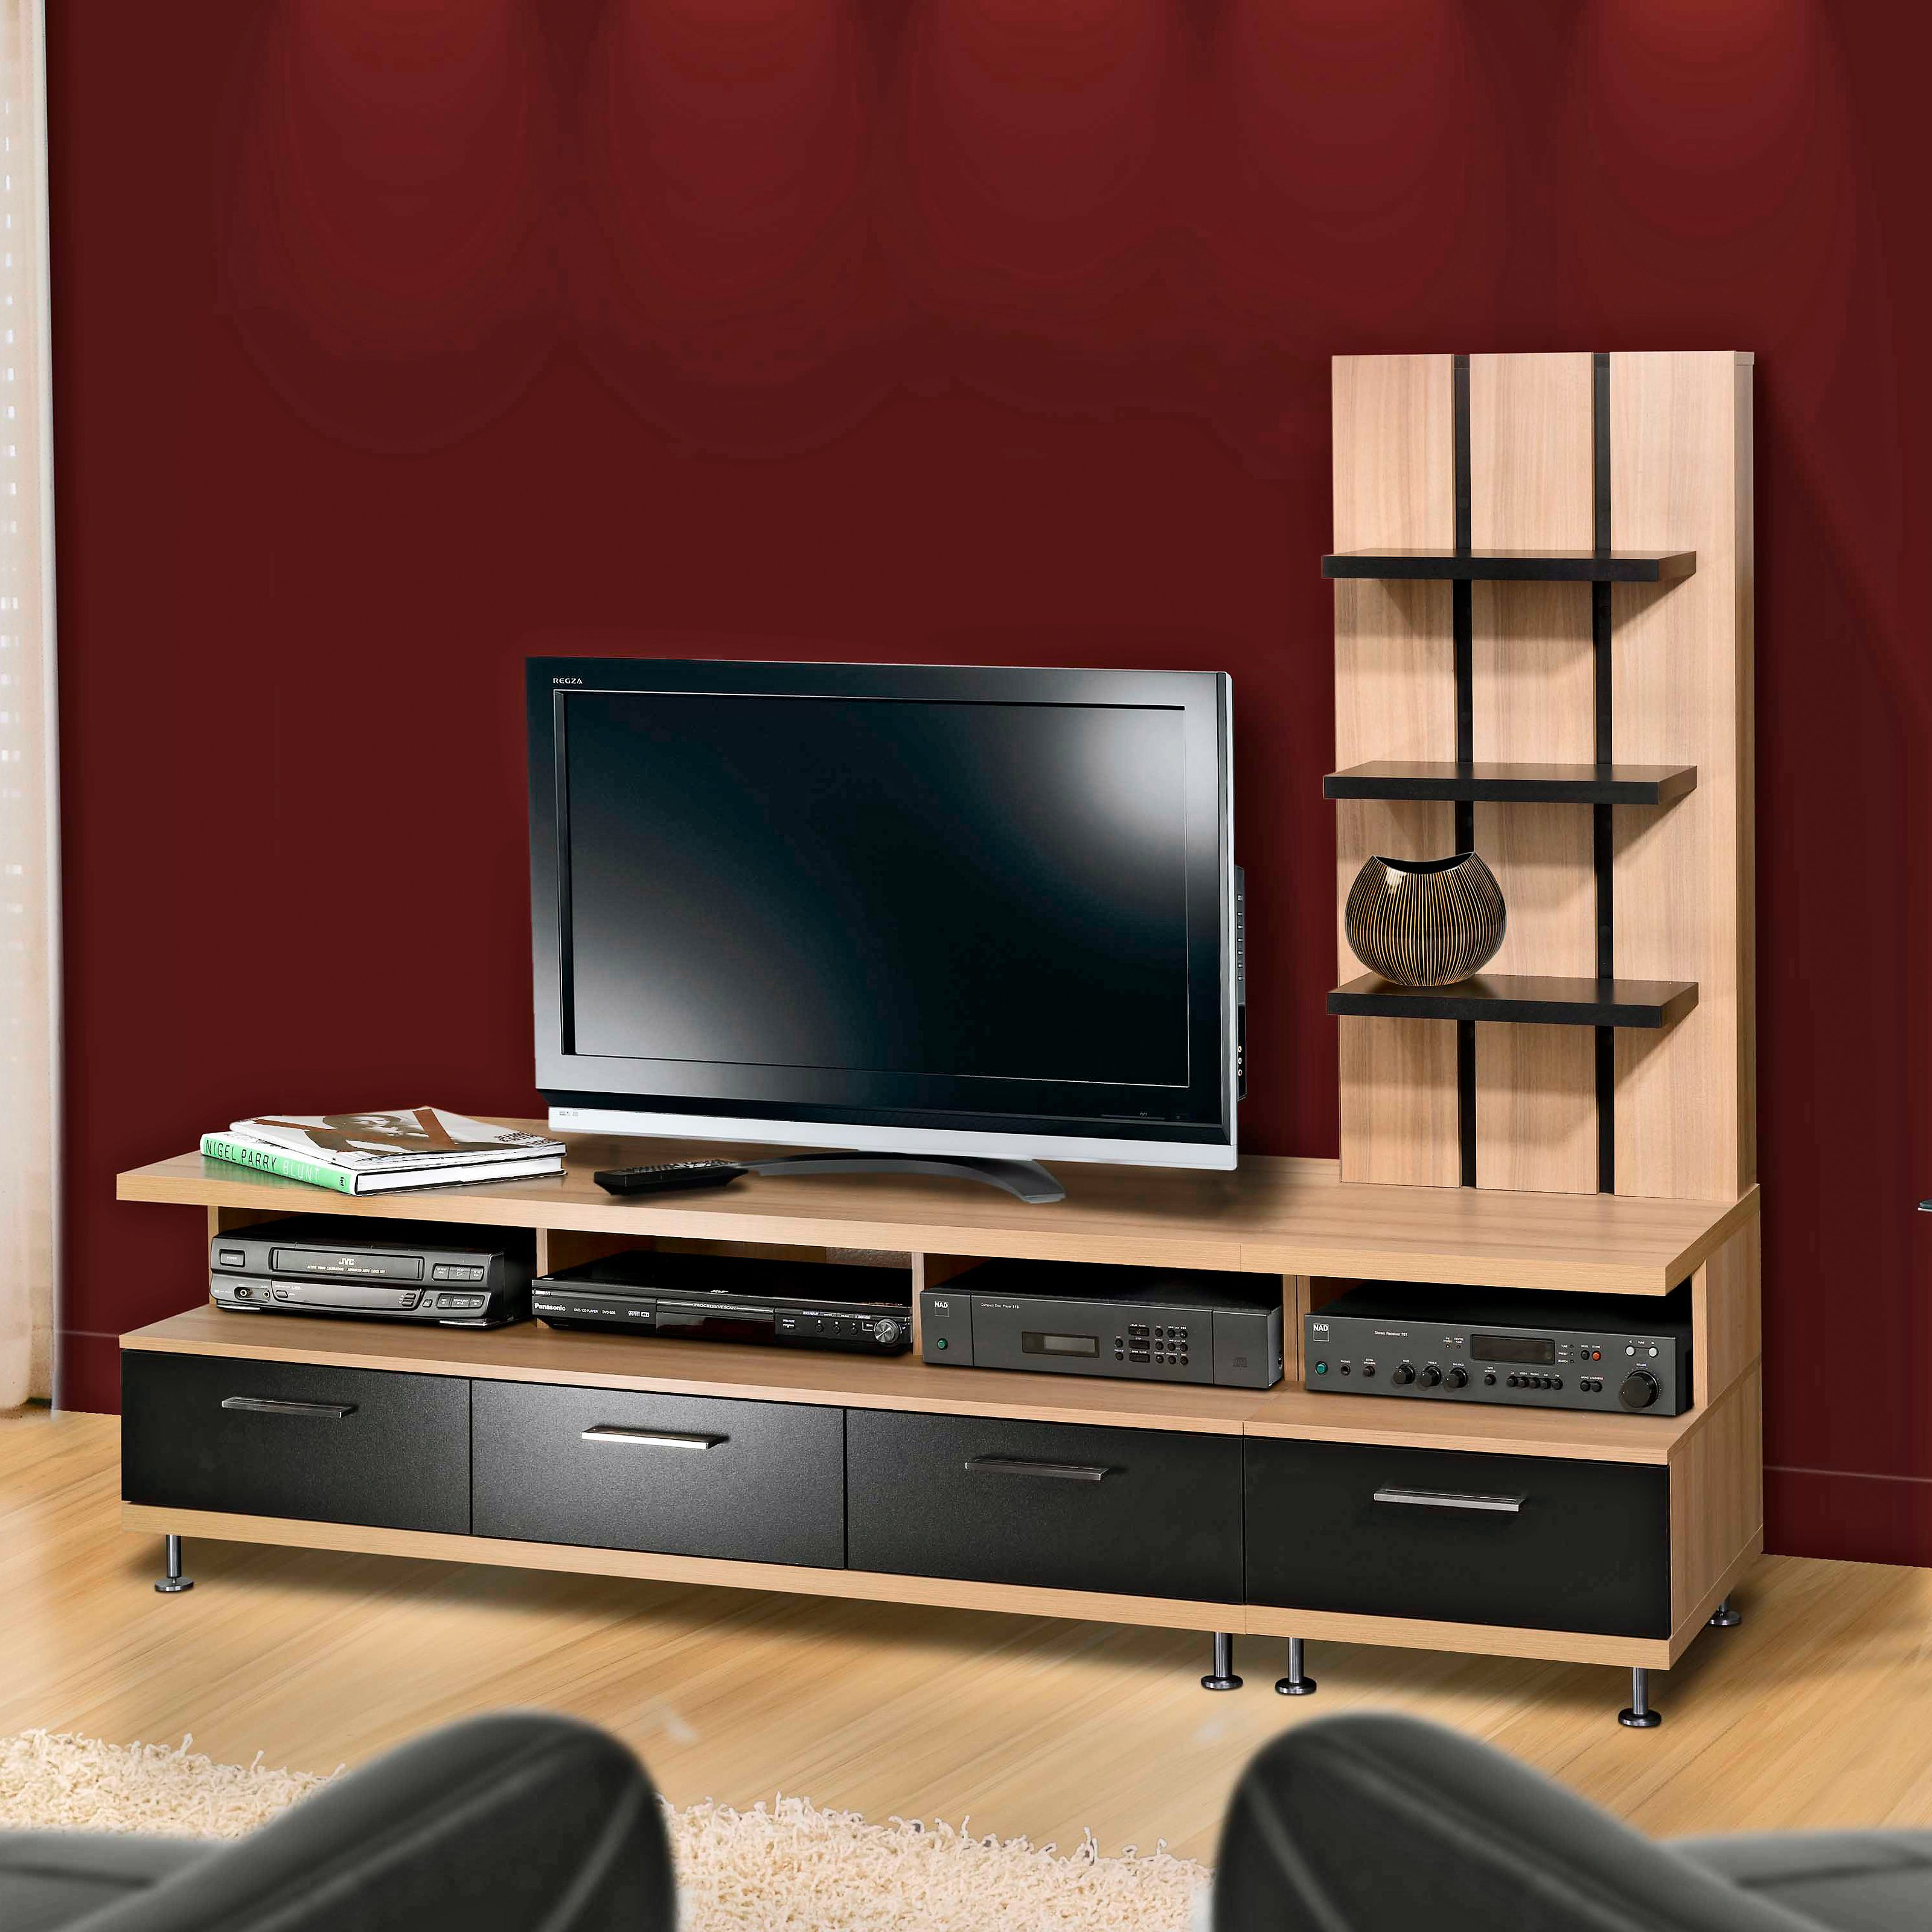 Latest Wooden Tv Stands For Flat Screens With Regard To Best Contemporary Tv Console For Flat Screens — All Contemporary Design (View 15 of 20)